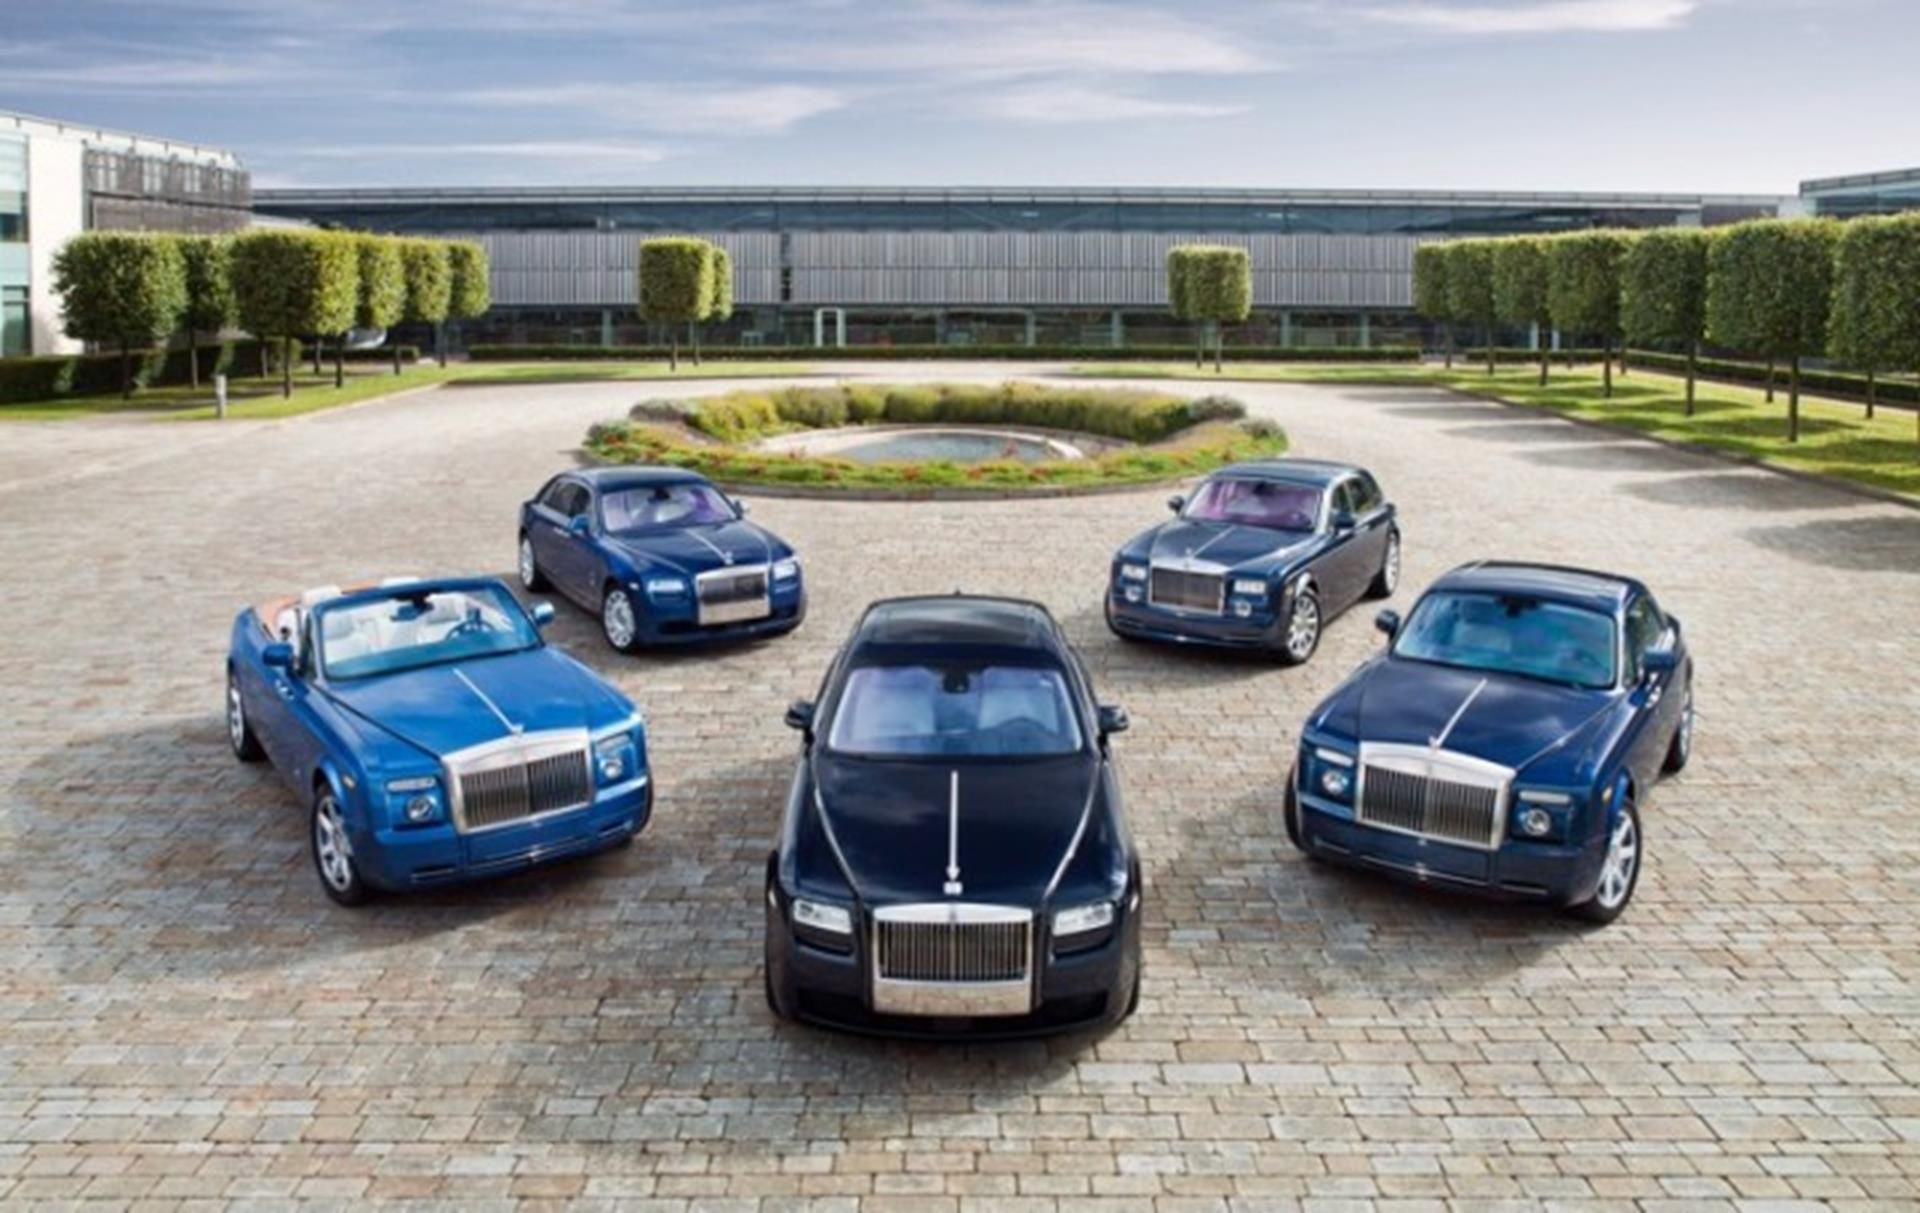 The home of Rolls-Royce Motor Cars - Goodwood, England